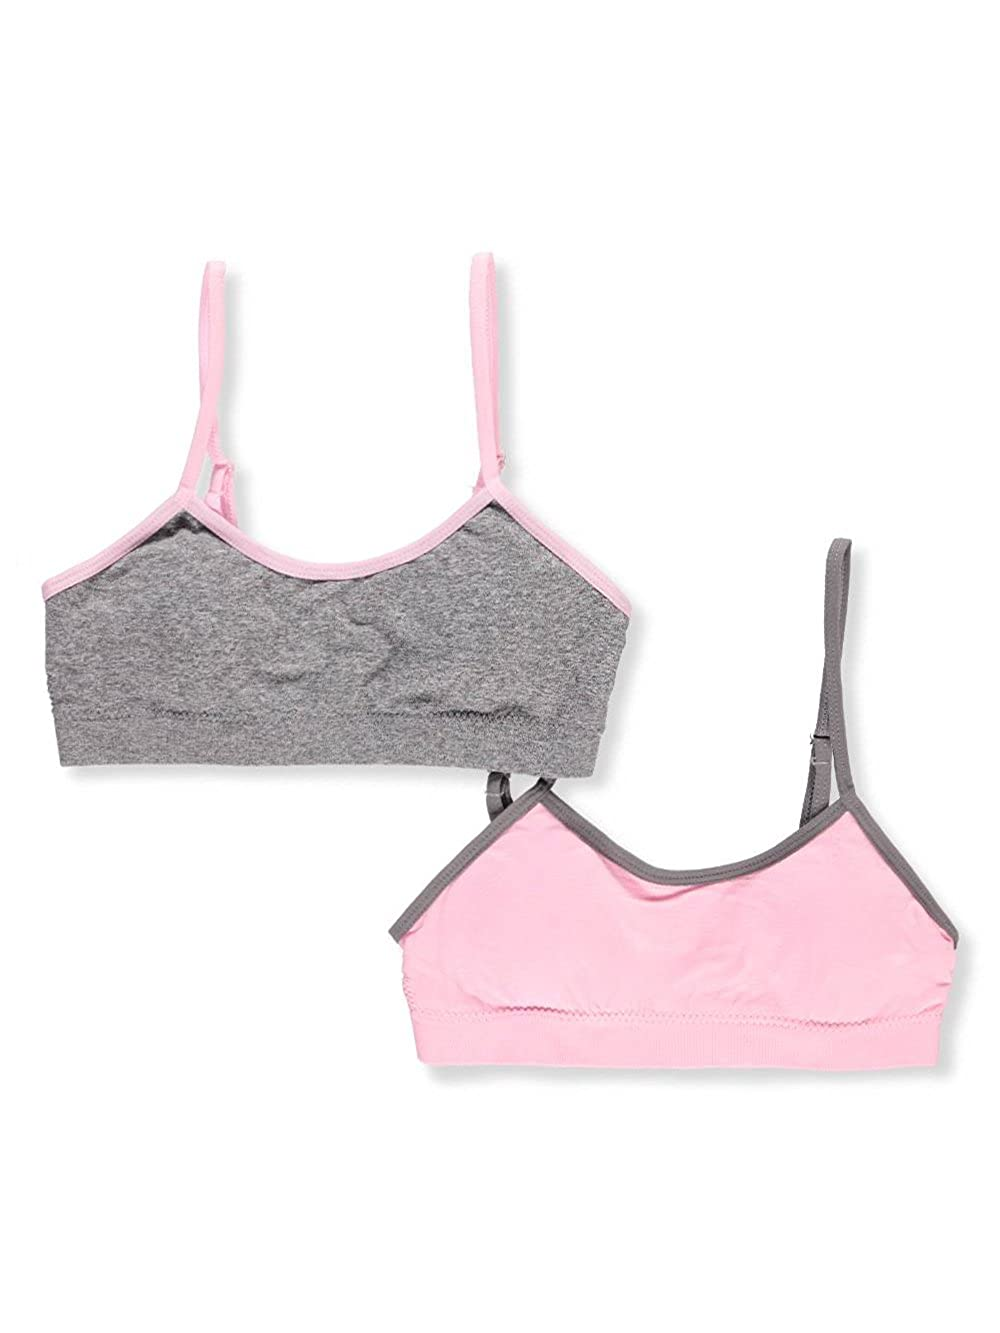 Marilyn Taylor Girls' 2-Pack Seamless Bras